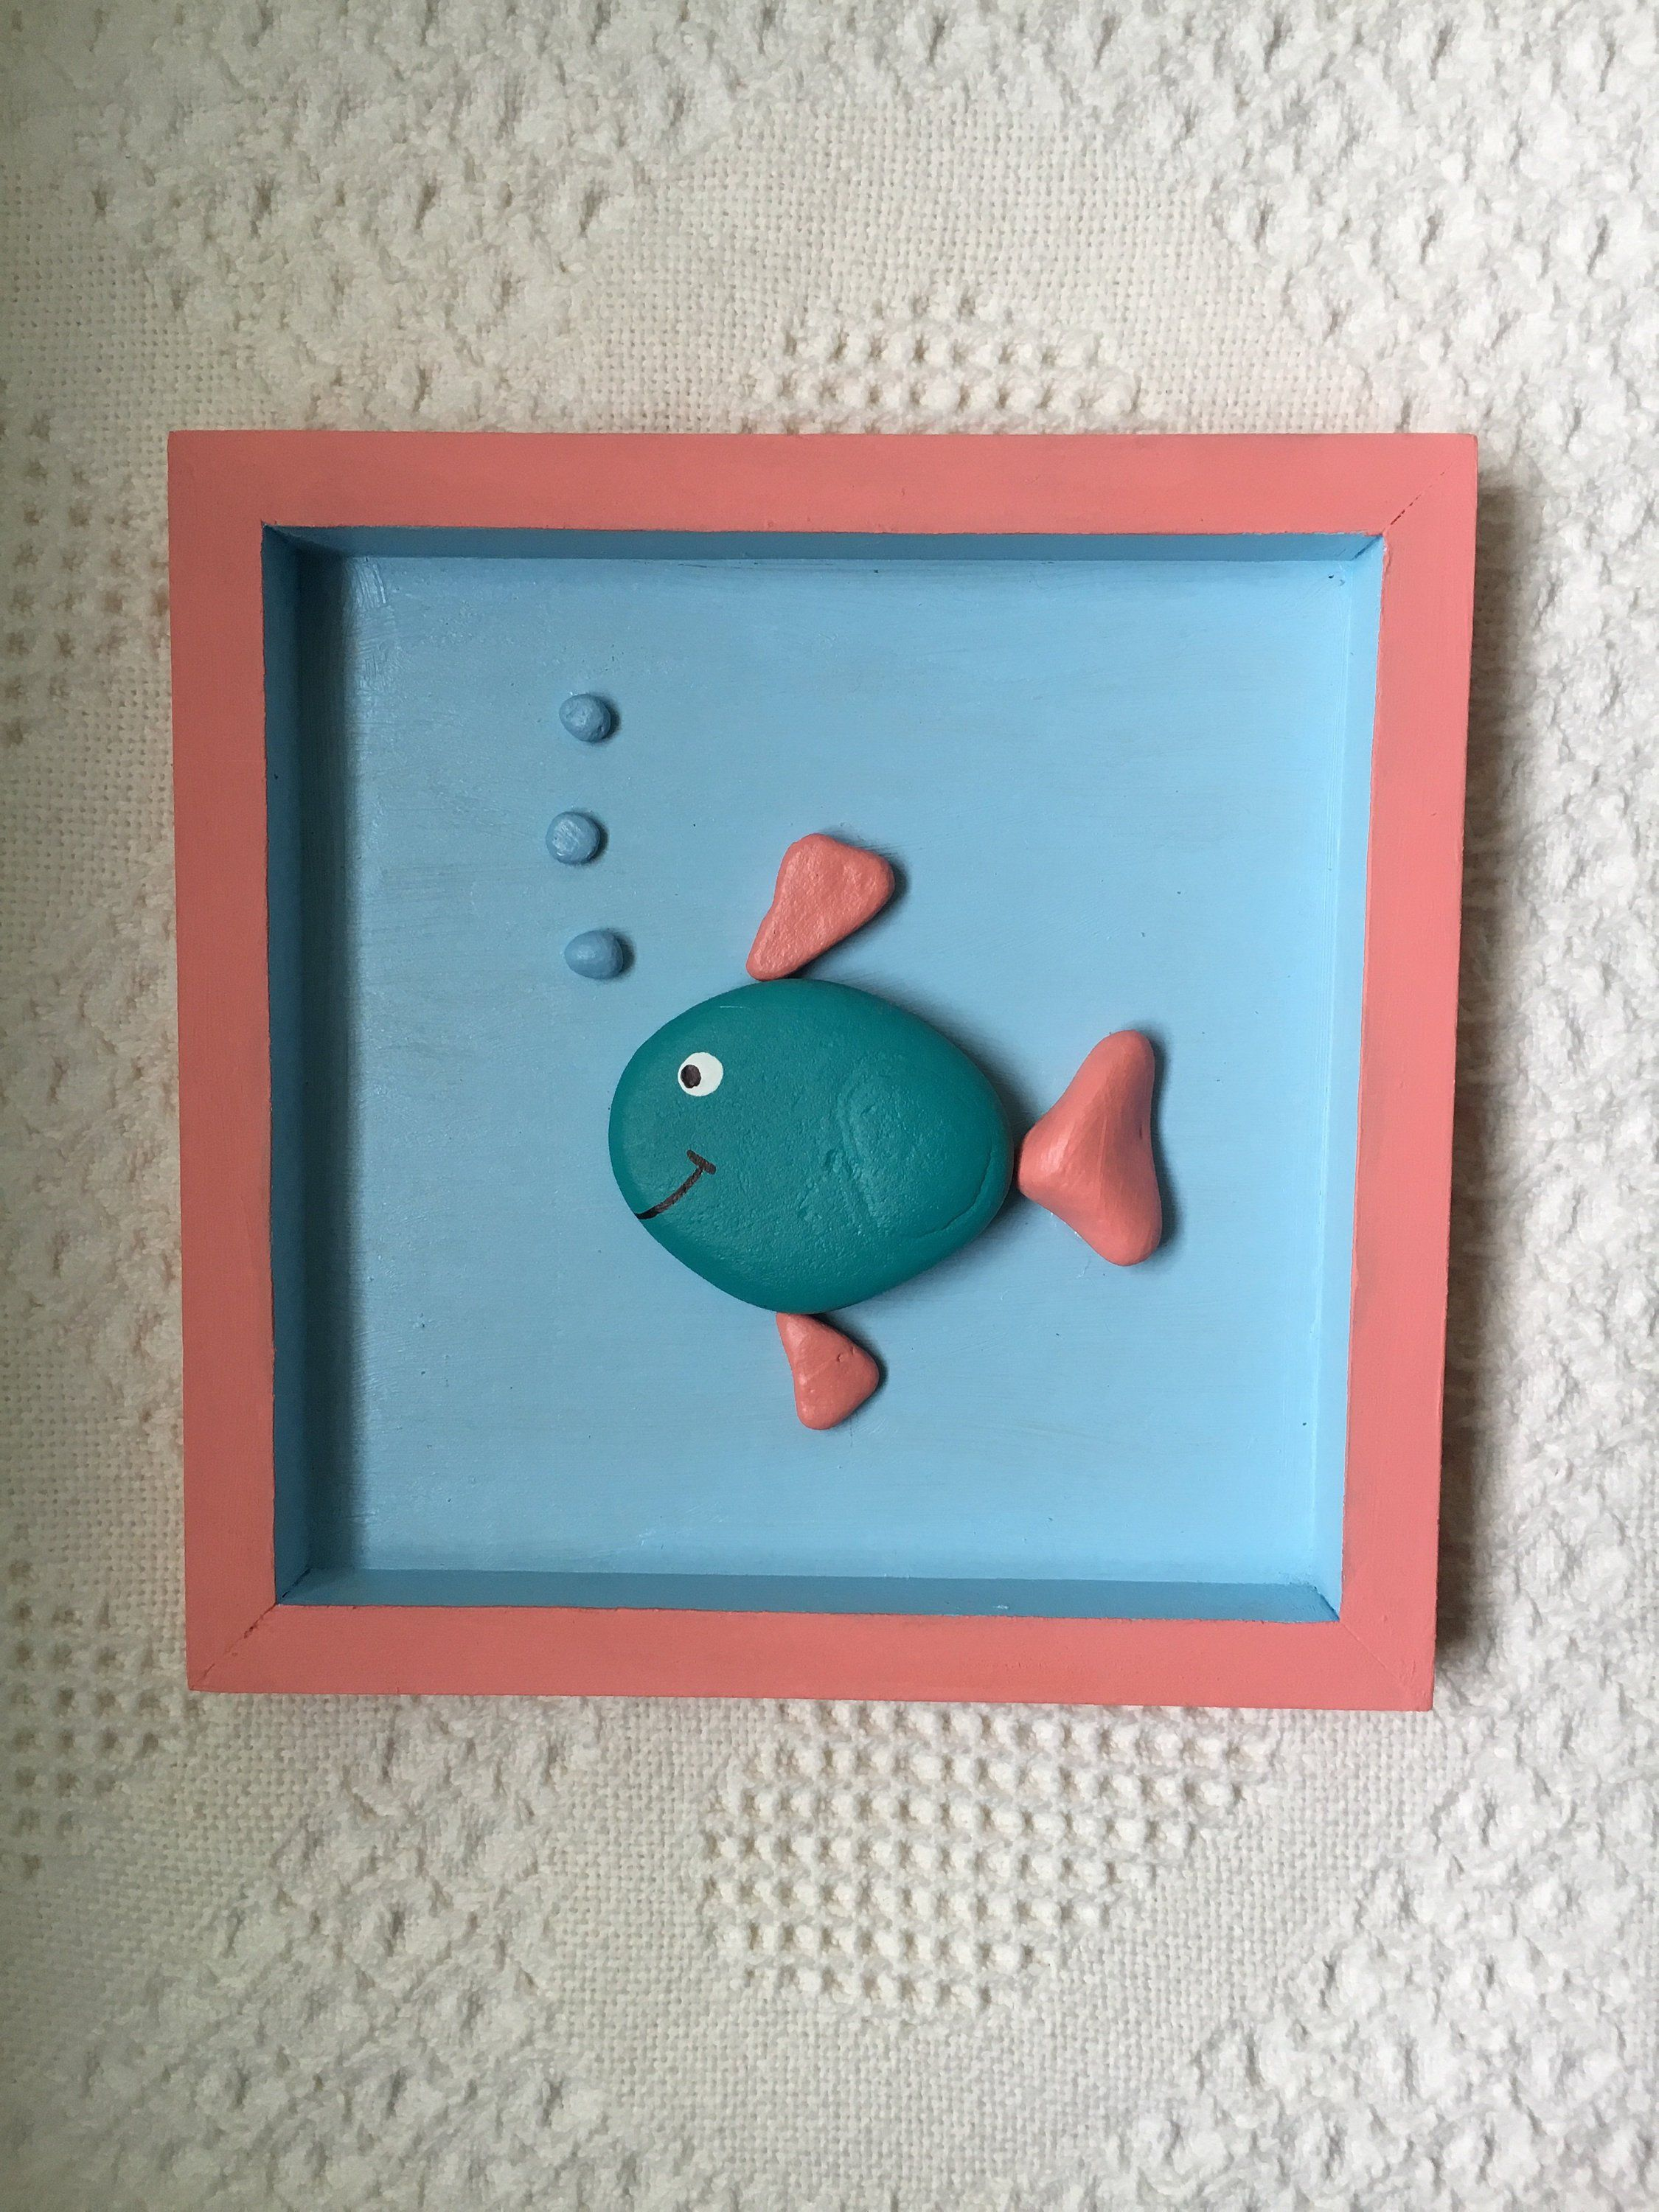 Fish decor, fish pebble art framed, painted pebble art for kids, beach house decor, office wall art, nursery wall art, baby shower gift #craftstomakeandsell